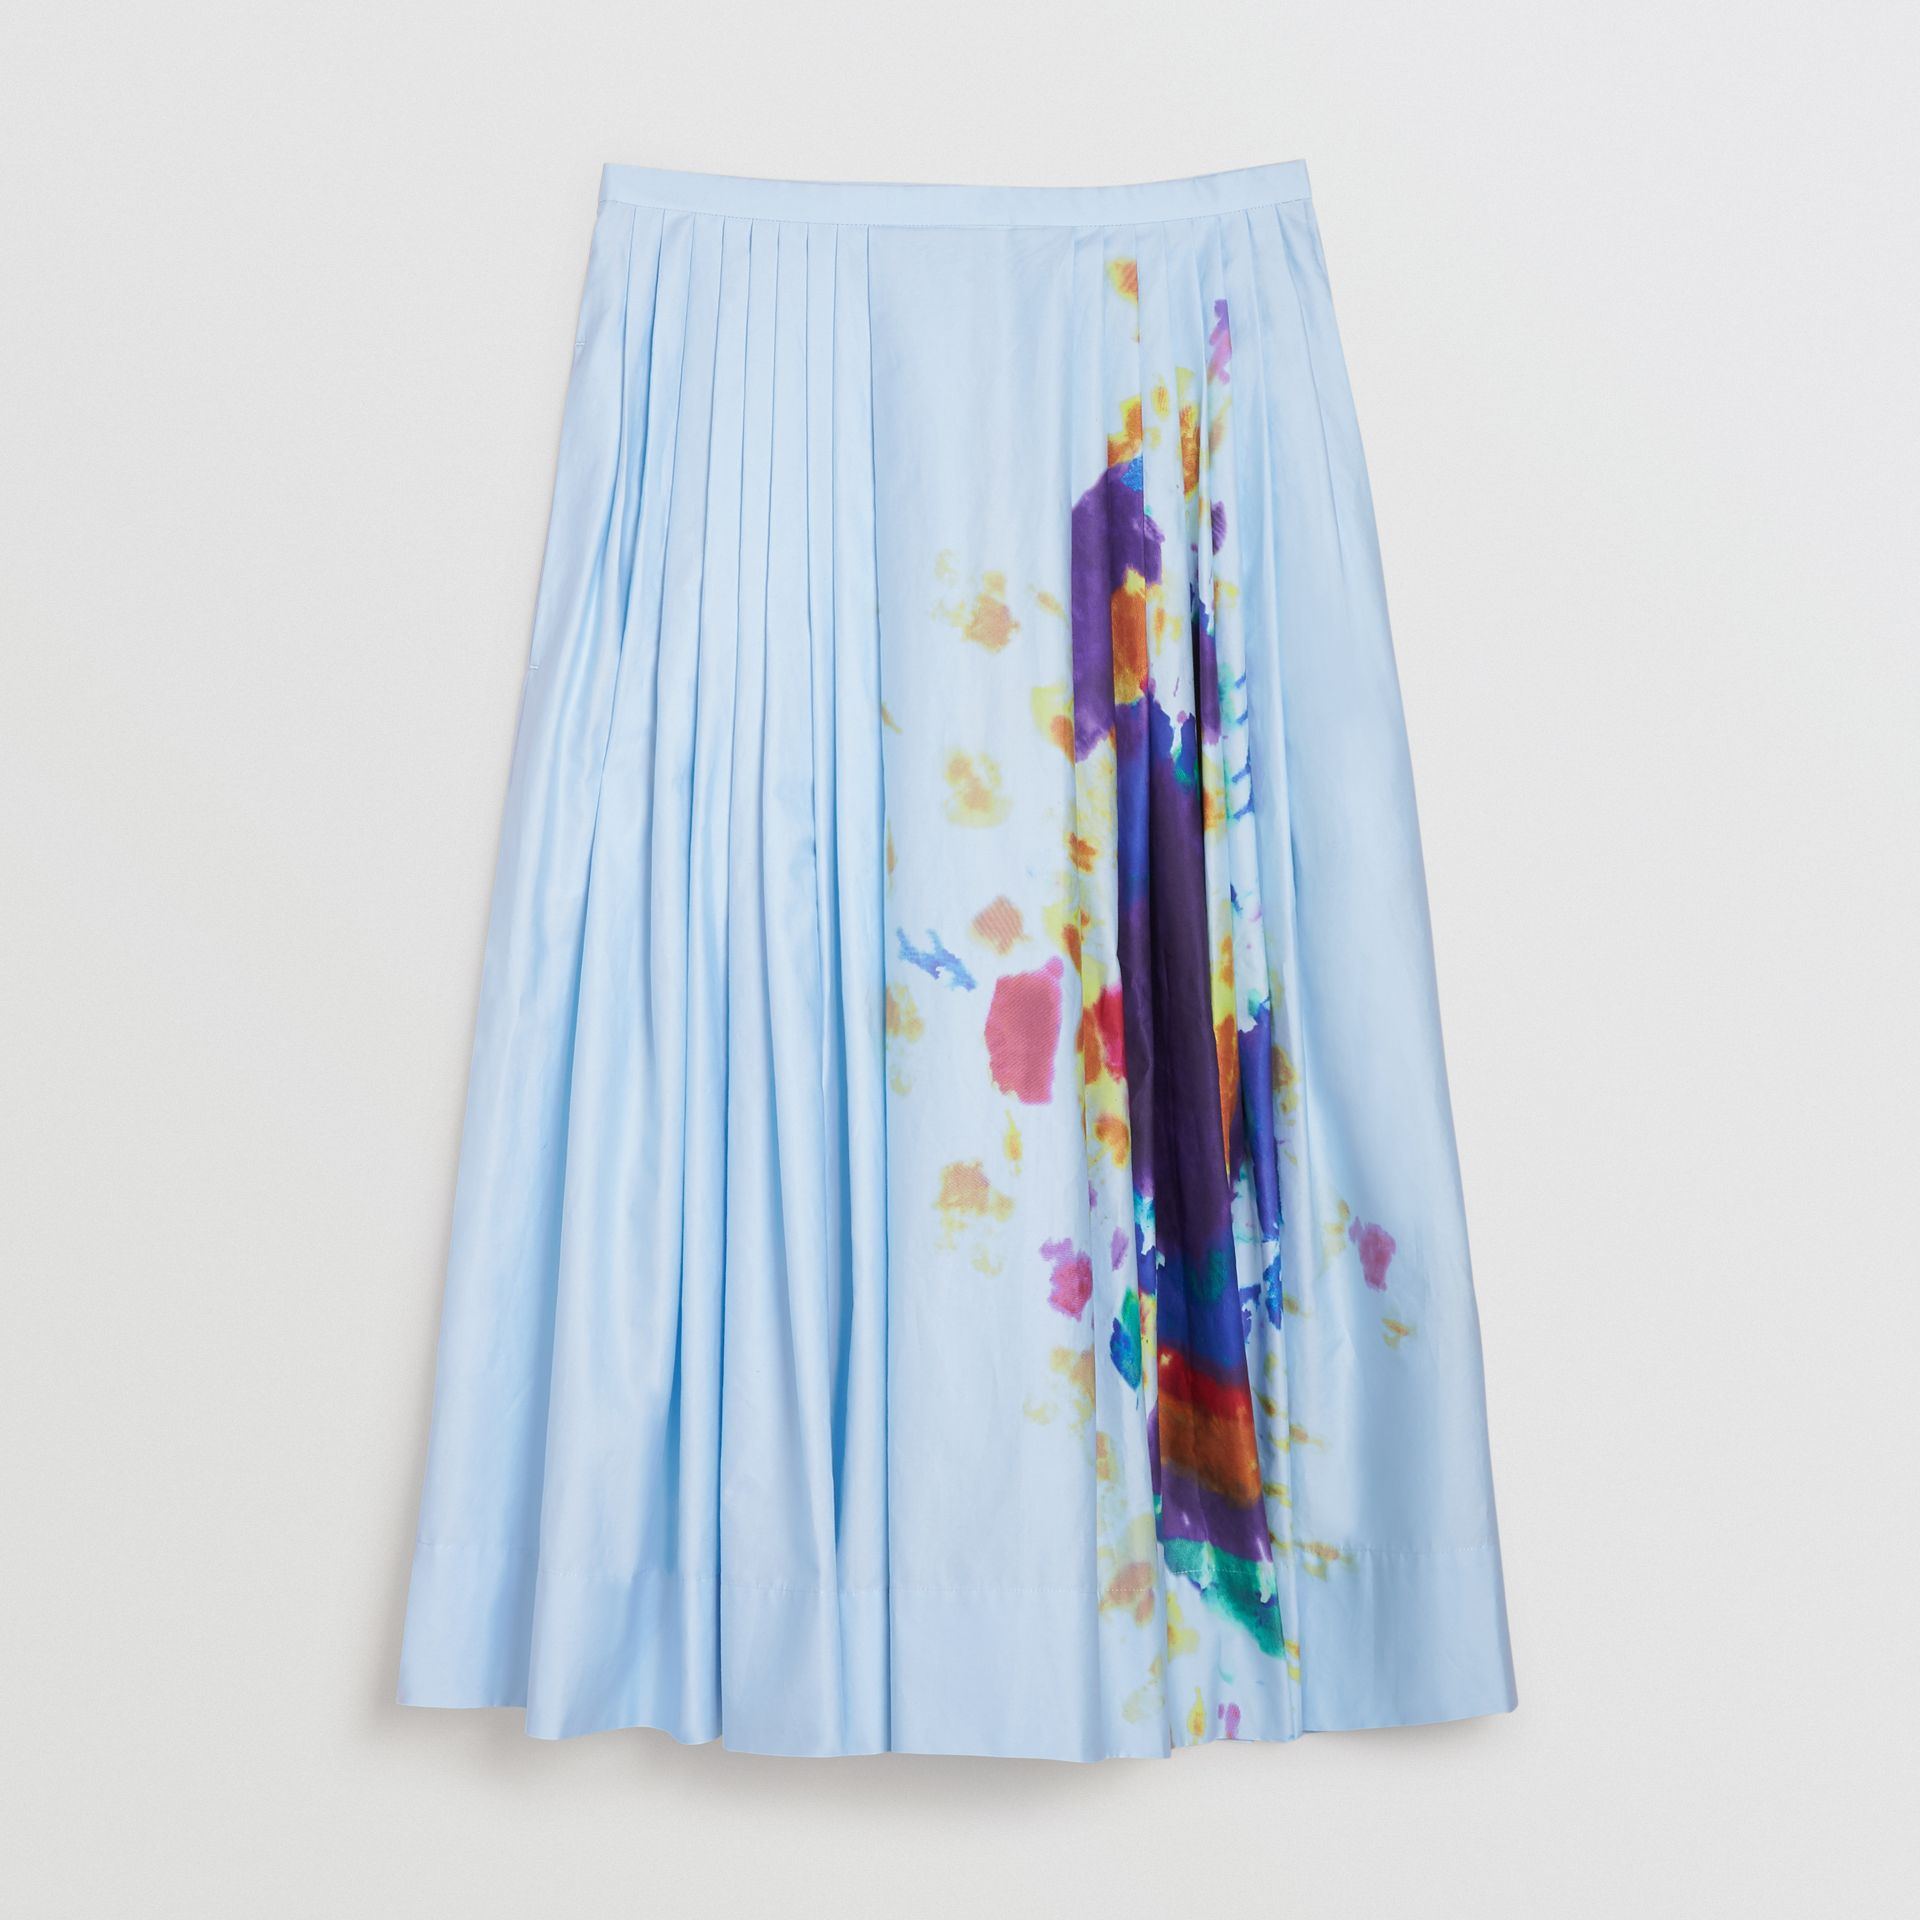 Rainbow Print Cotton Sateen Skirt in Light Blue - Women | Burberry - gallery image 3